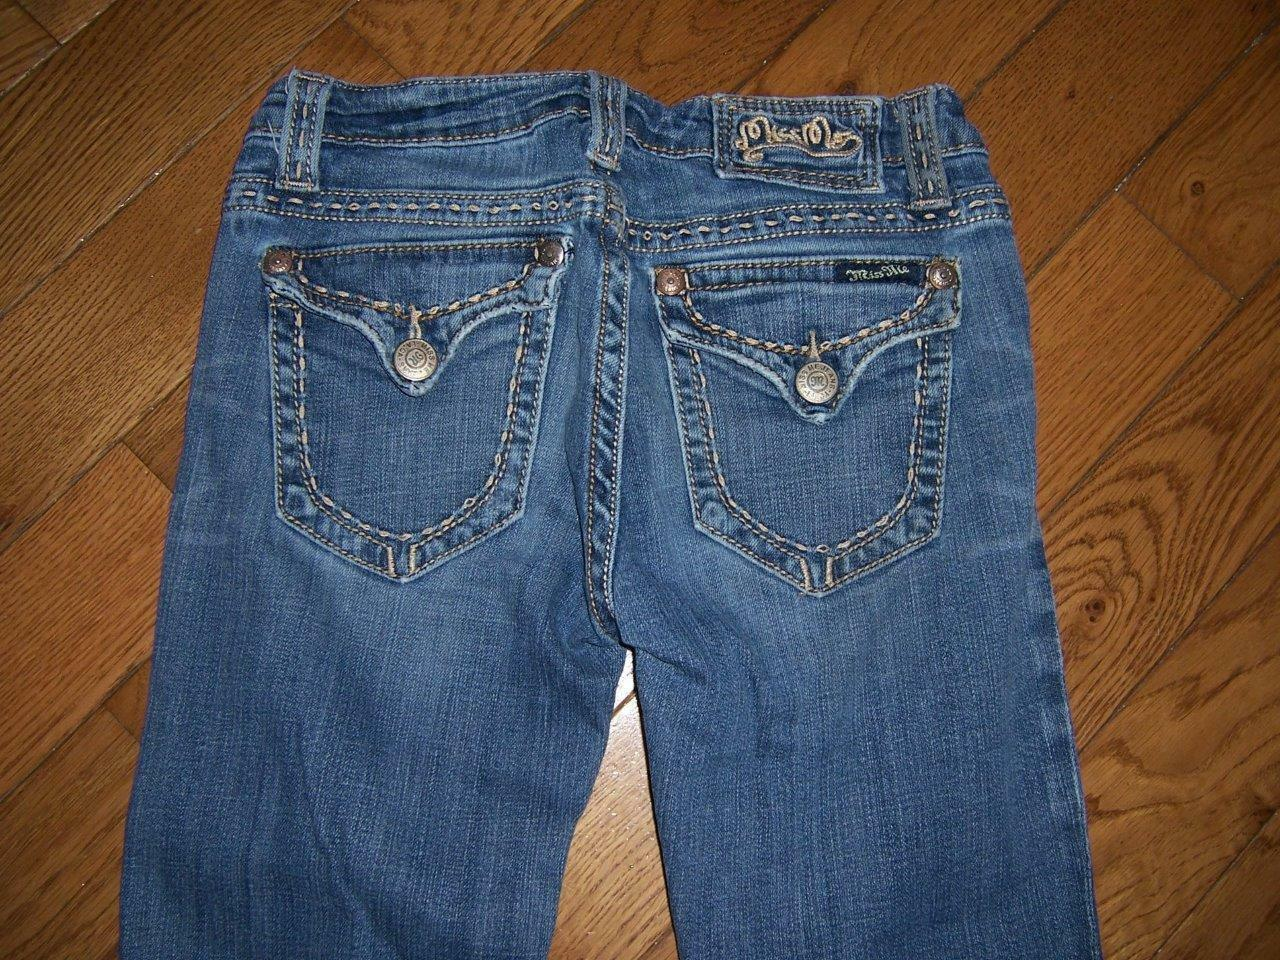 MISS ME AUSTIN BOOT CUT JEANS JP4896KND WAIST 27 LENGTH 34 AWESOME